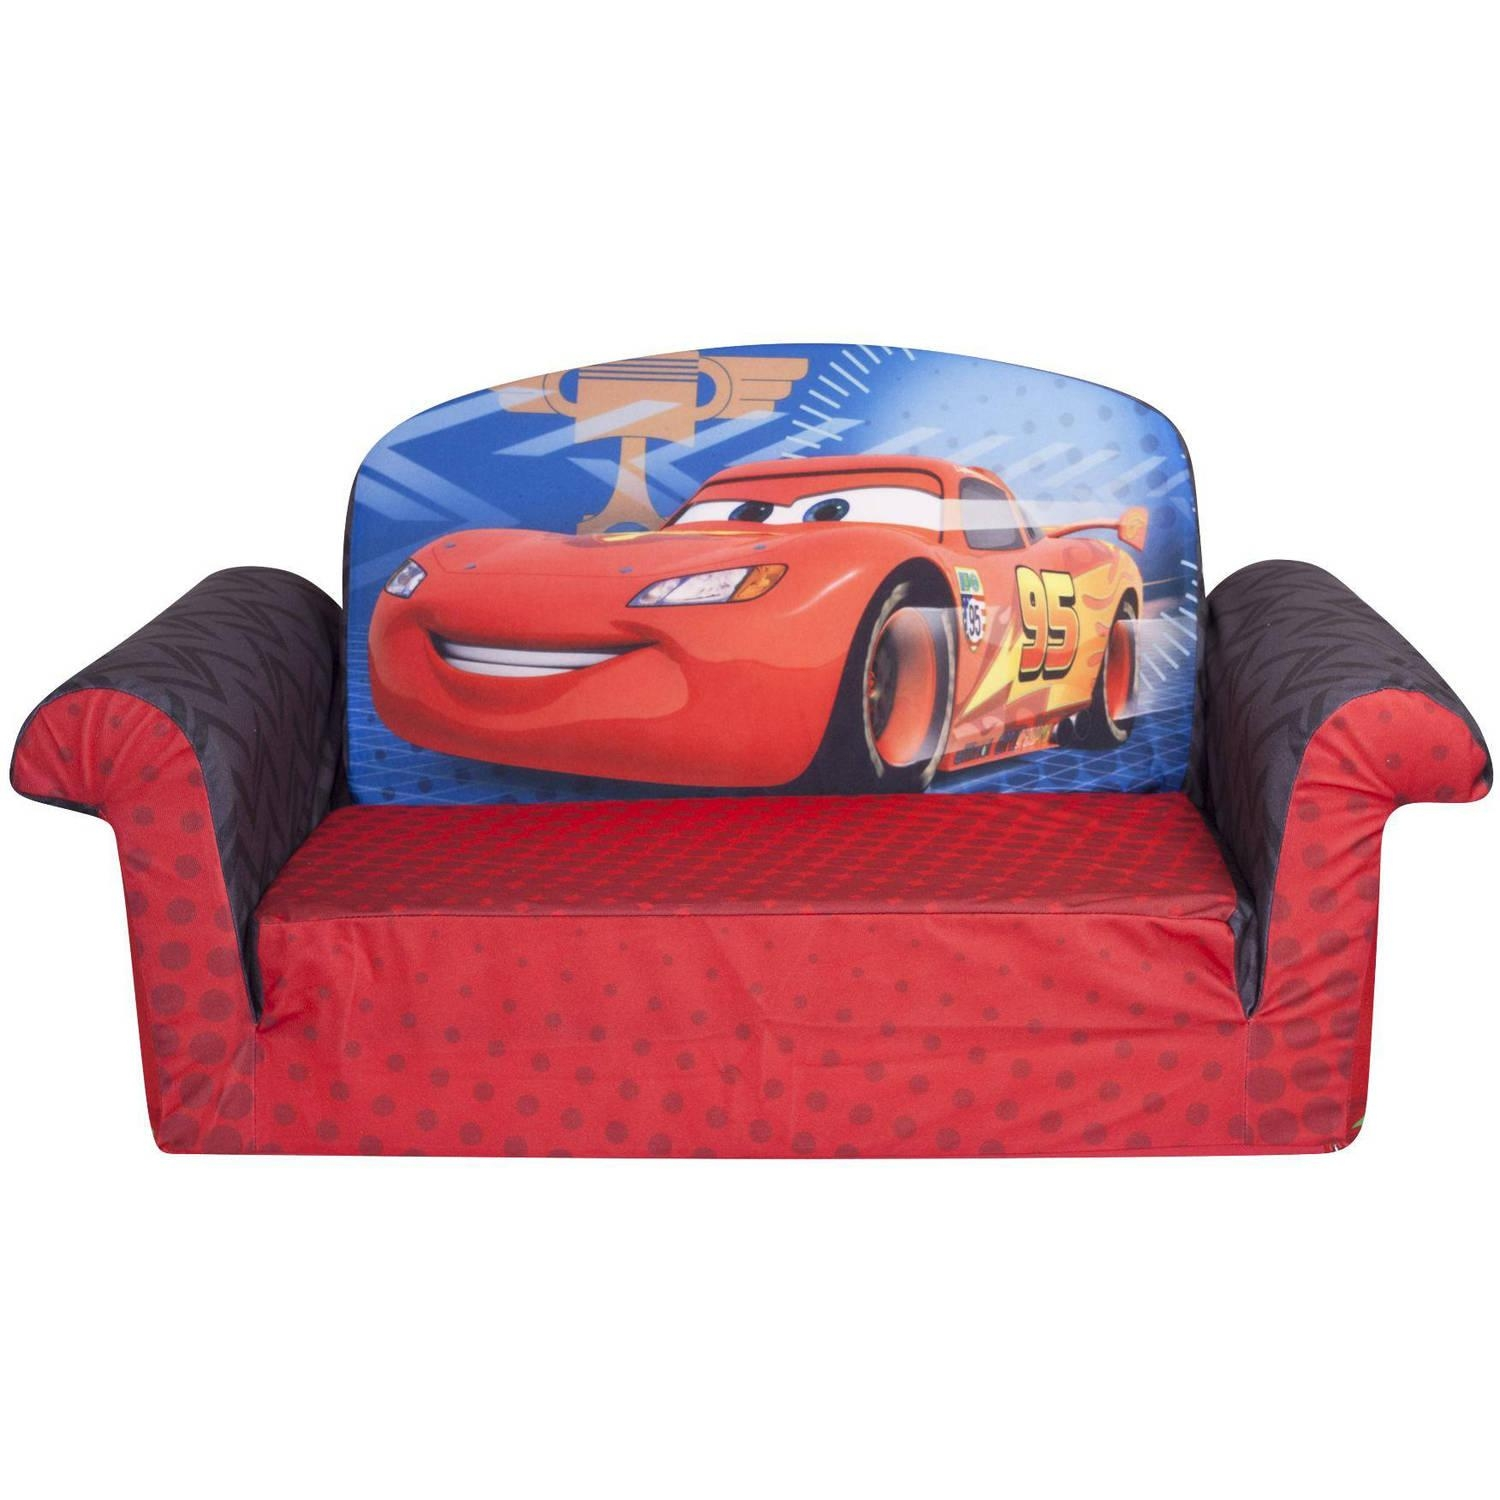 Marshmallow 2 In 1 Flip Open Sofa, Disney Cars 2 – Walmart For Disney Sofa Chairs (Image 10 of 20)